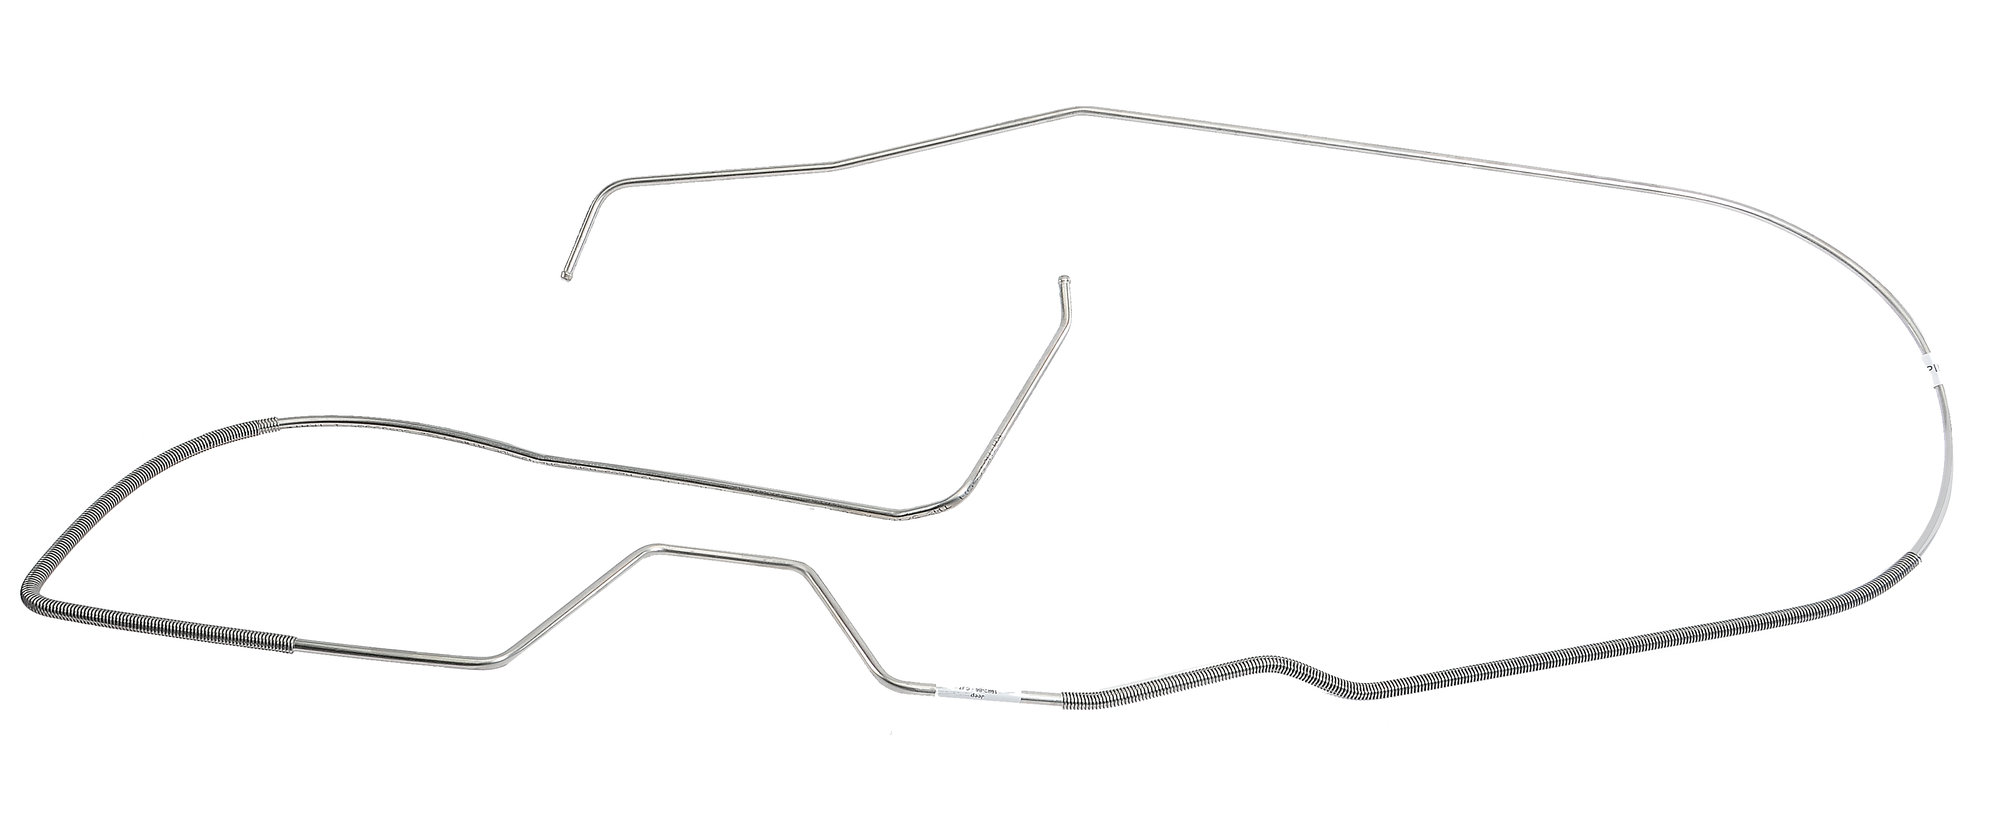 Classic Tube JEF1007 Replacement Stainless Steel Fuel Tank